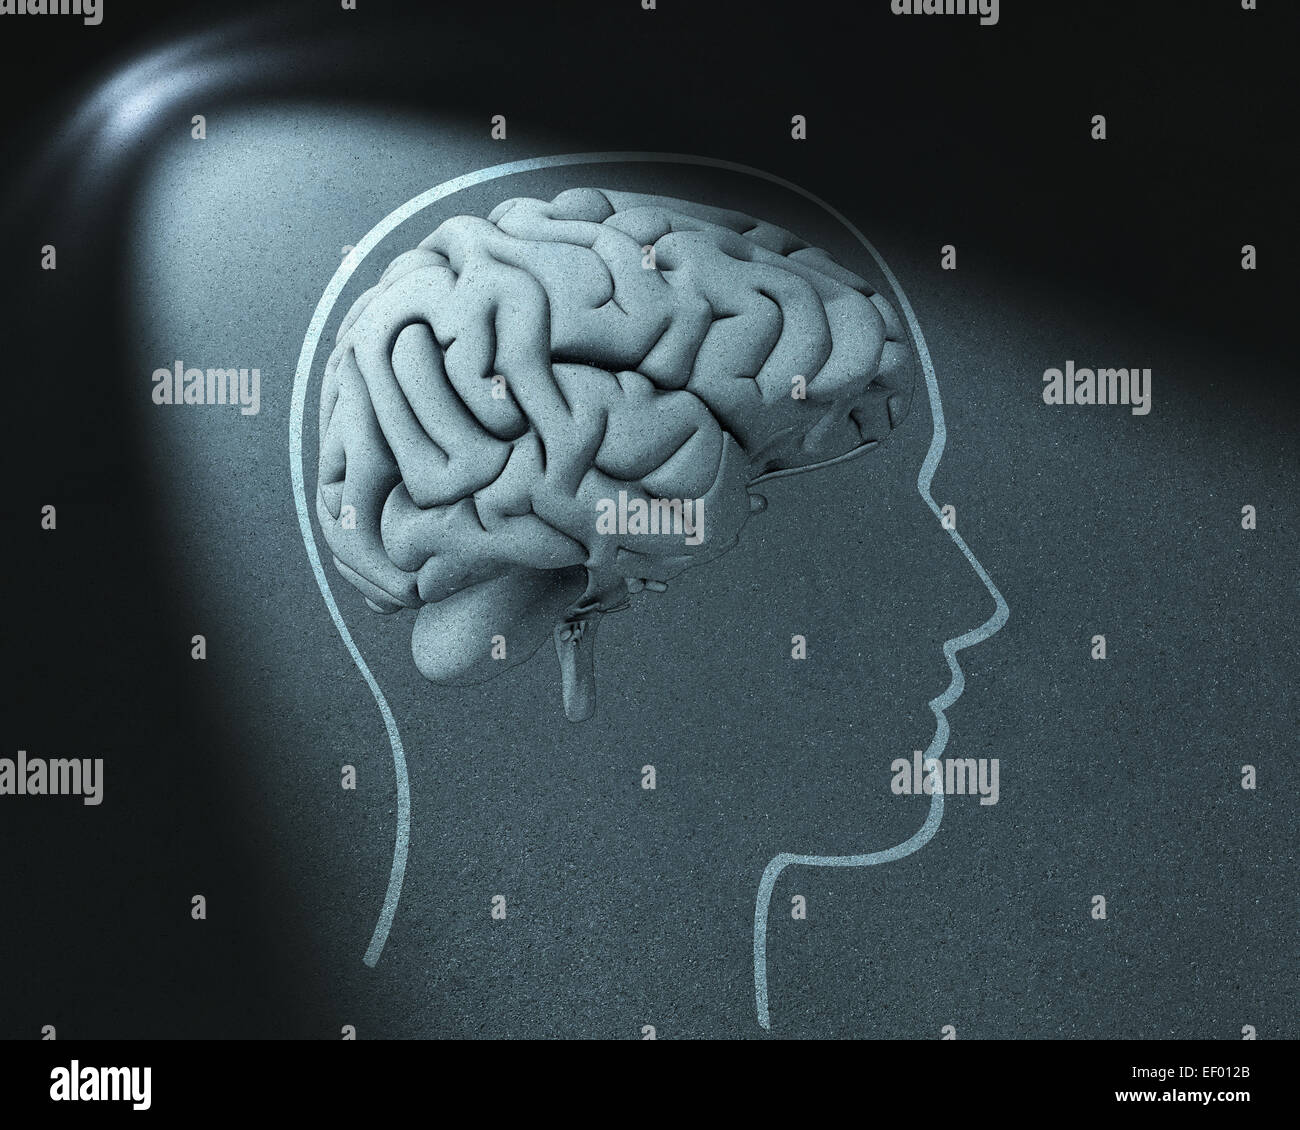 Head and brain drawing in spot of light - Stock Image